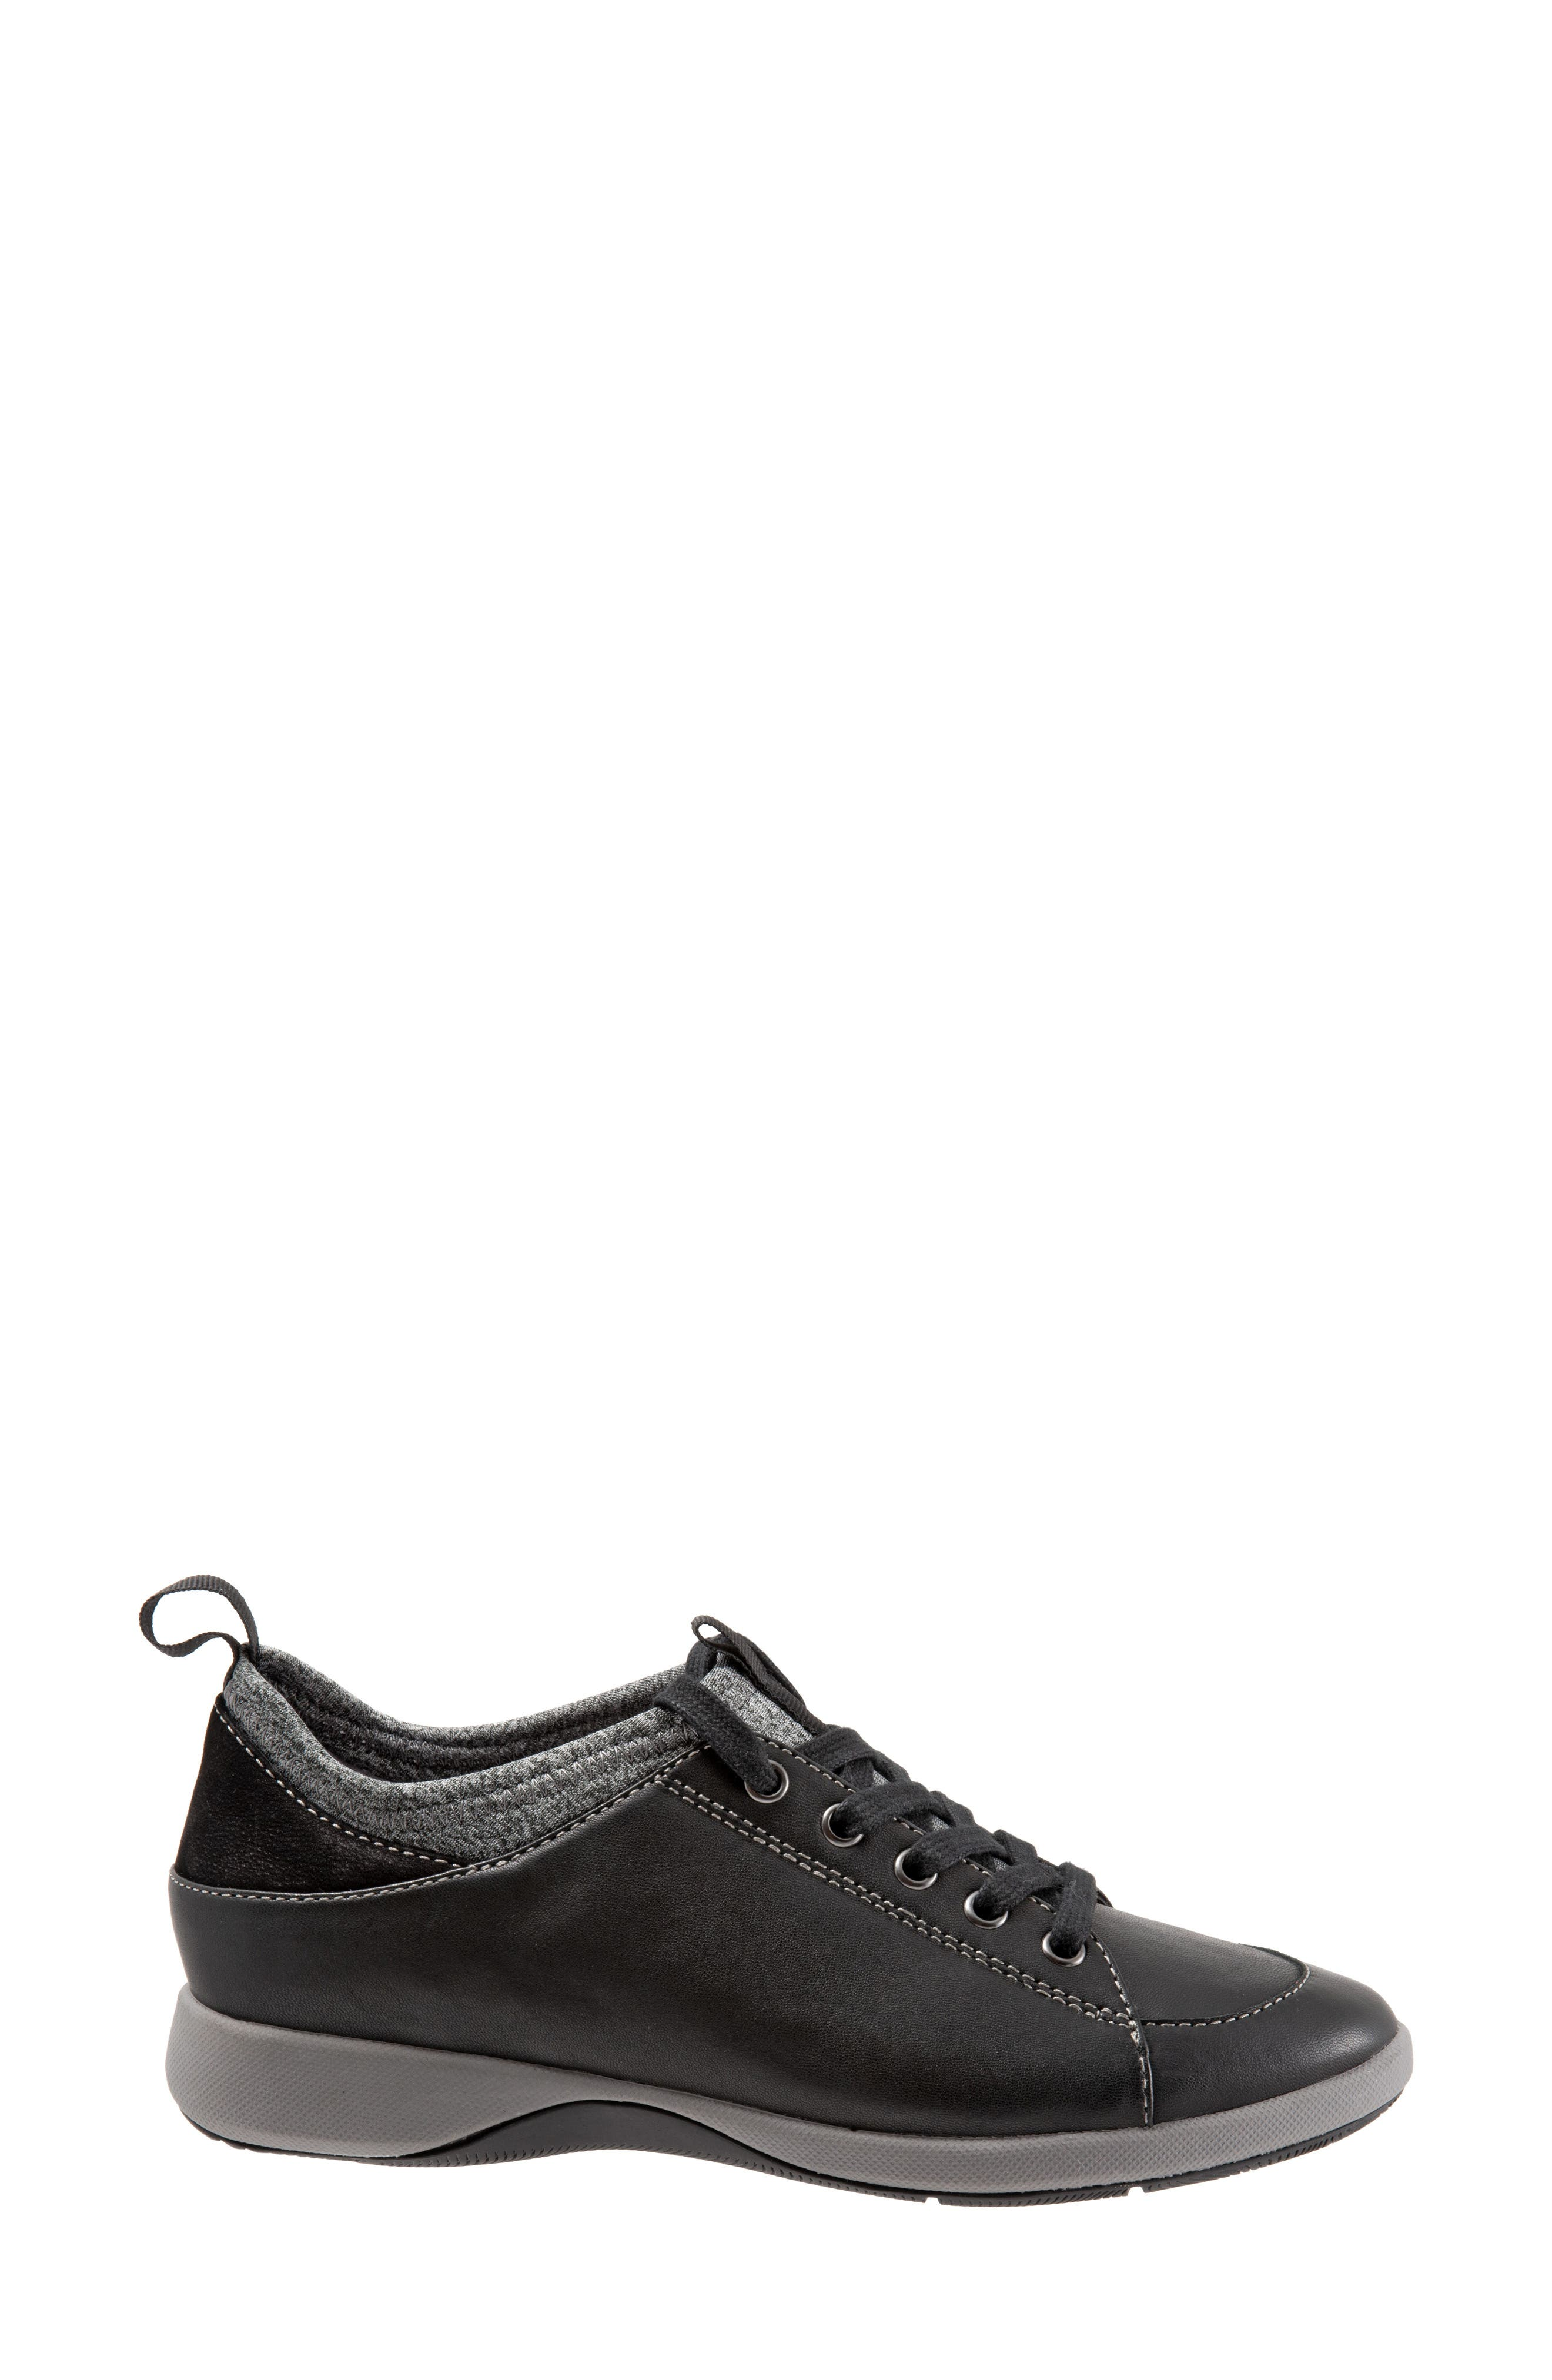 SAVA Haven Sneaker,                             Alternate thumbnail 3, color,                             BLACK/ GREY LEATHER